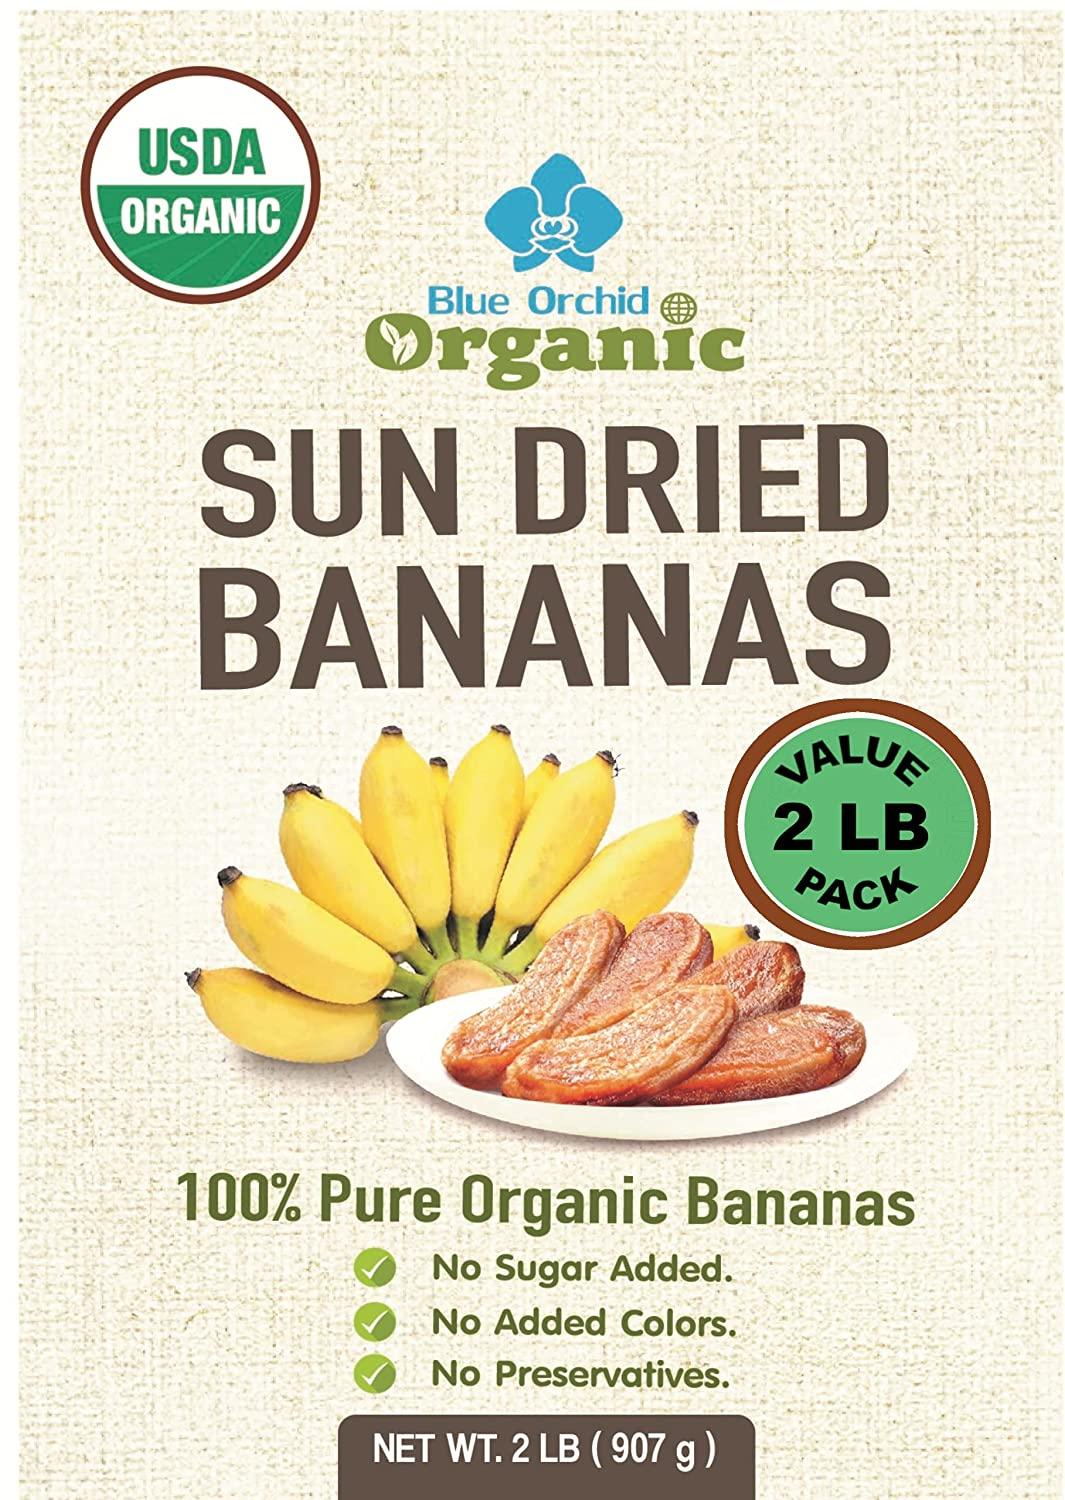 100% USDA Certified sale Organic Sun Dried - Value Bananas Sales of SALE items from new works Pack LB 2